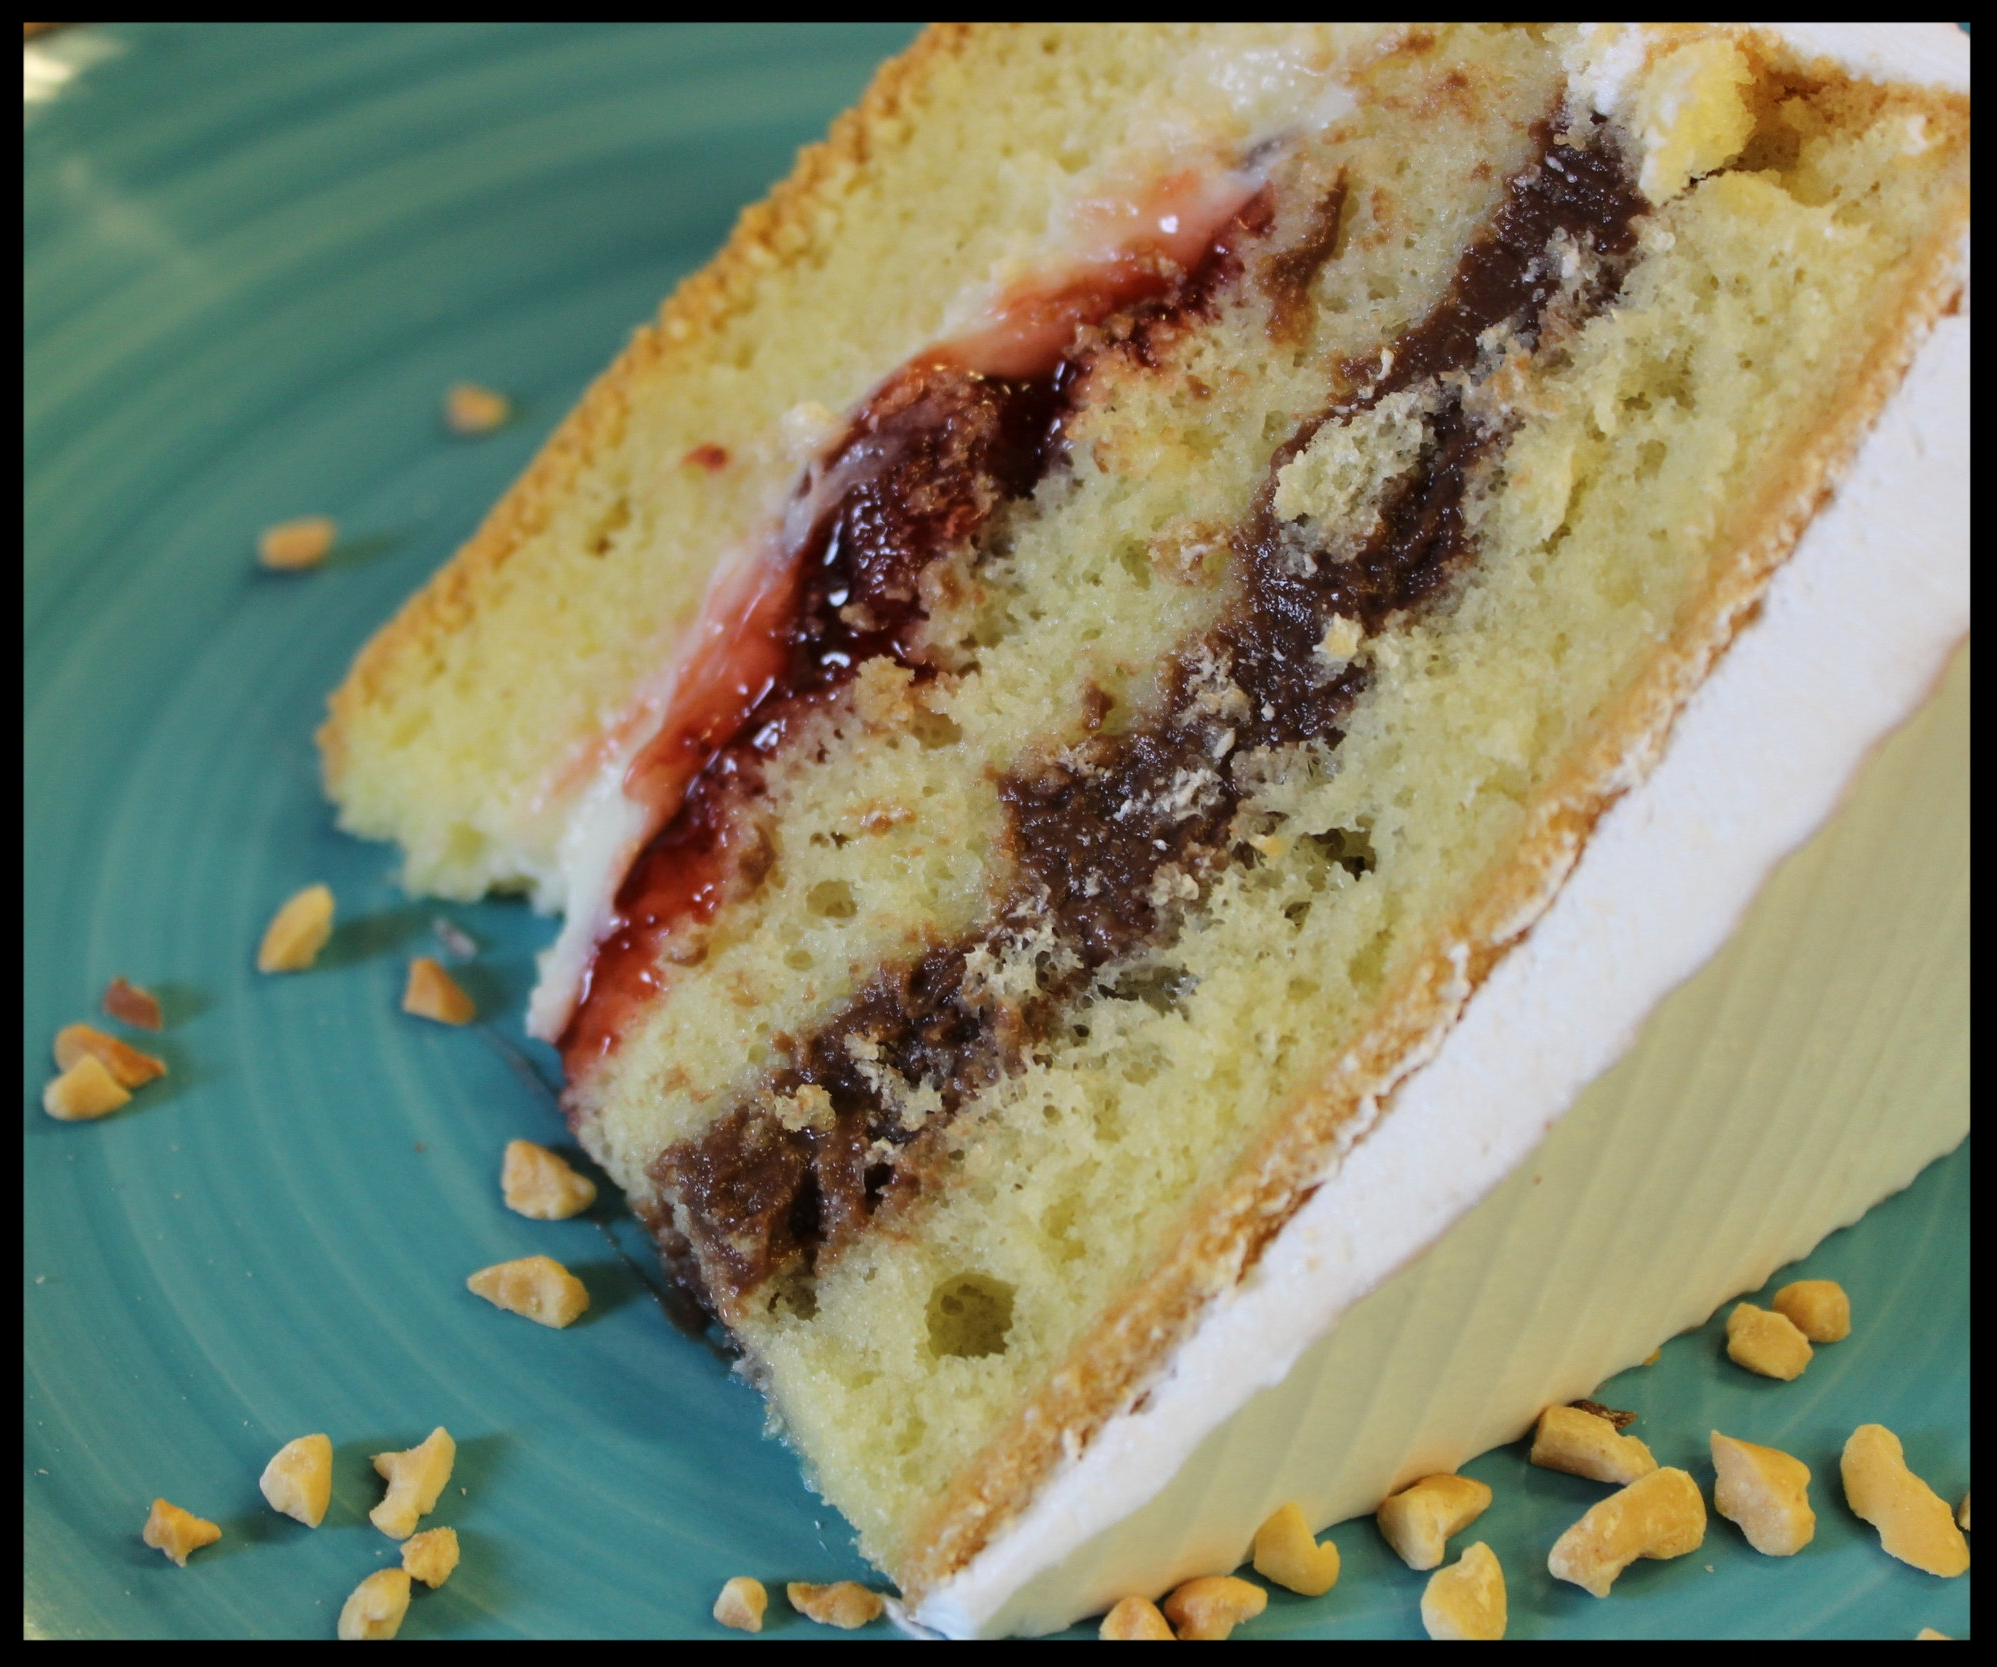 Rum Cake Slice - Rum flavored sponge with chocolate cream, mixed cream, strawberry, buttercream frosting and peanuts.